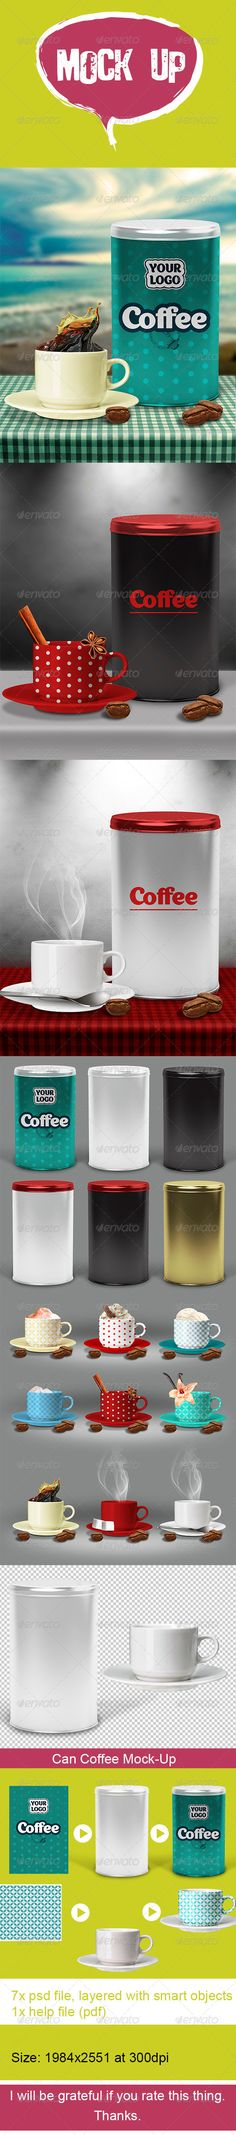 Can Coffee Mock Up